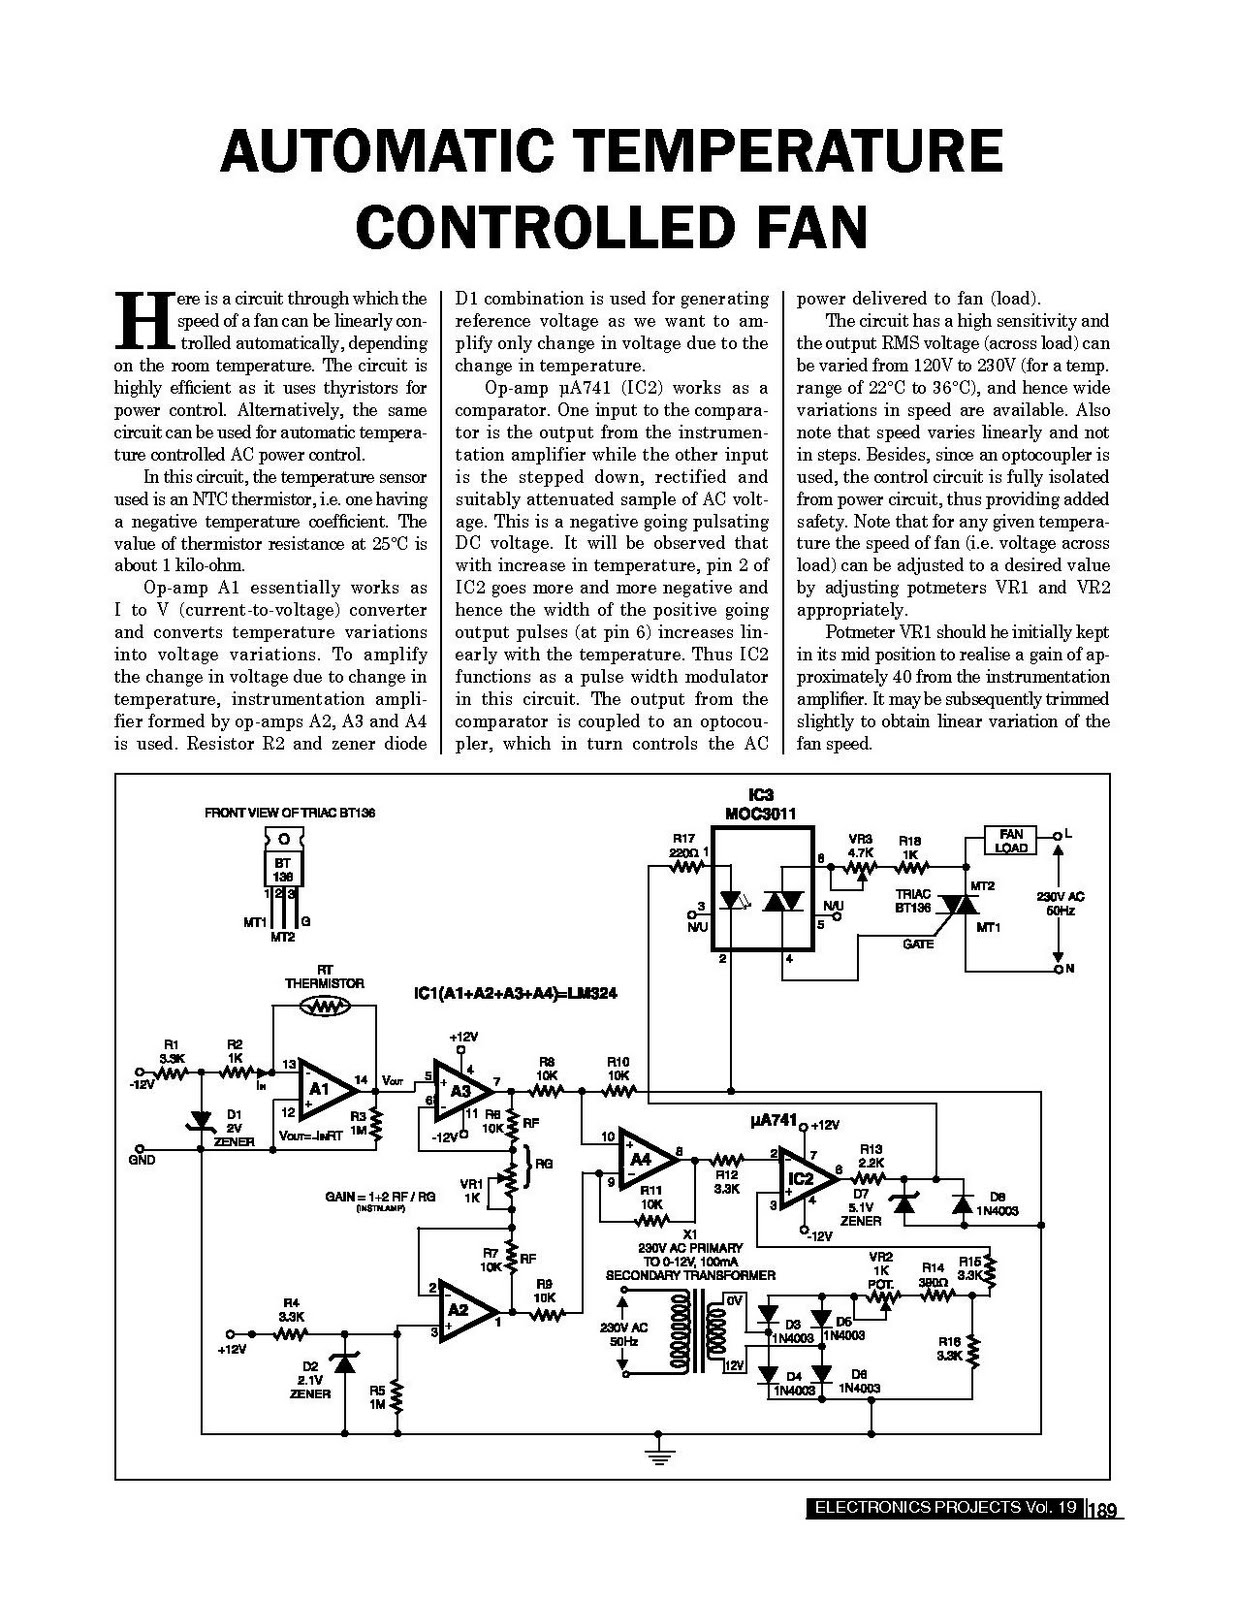 Automatic Temperature Controlled Fan ~ Electronics Circuits For You #242424